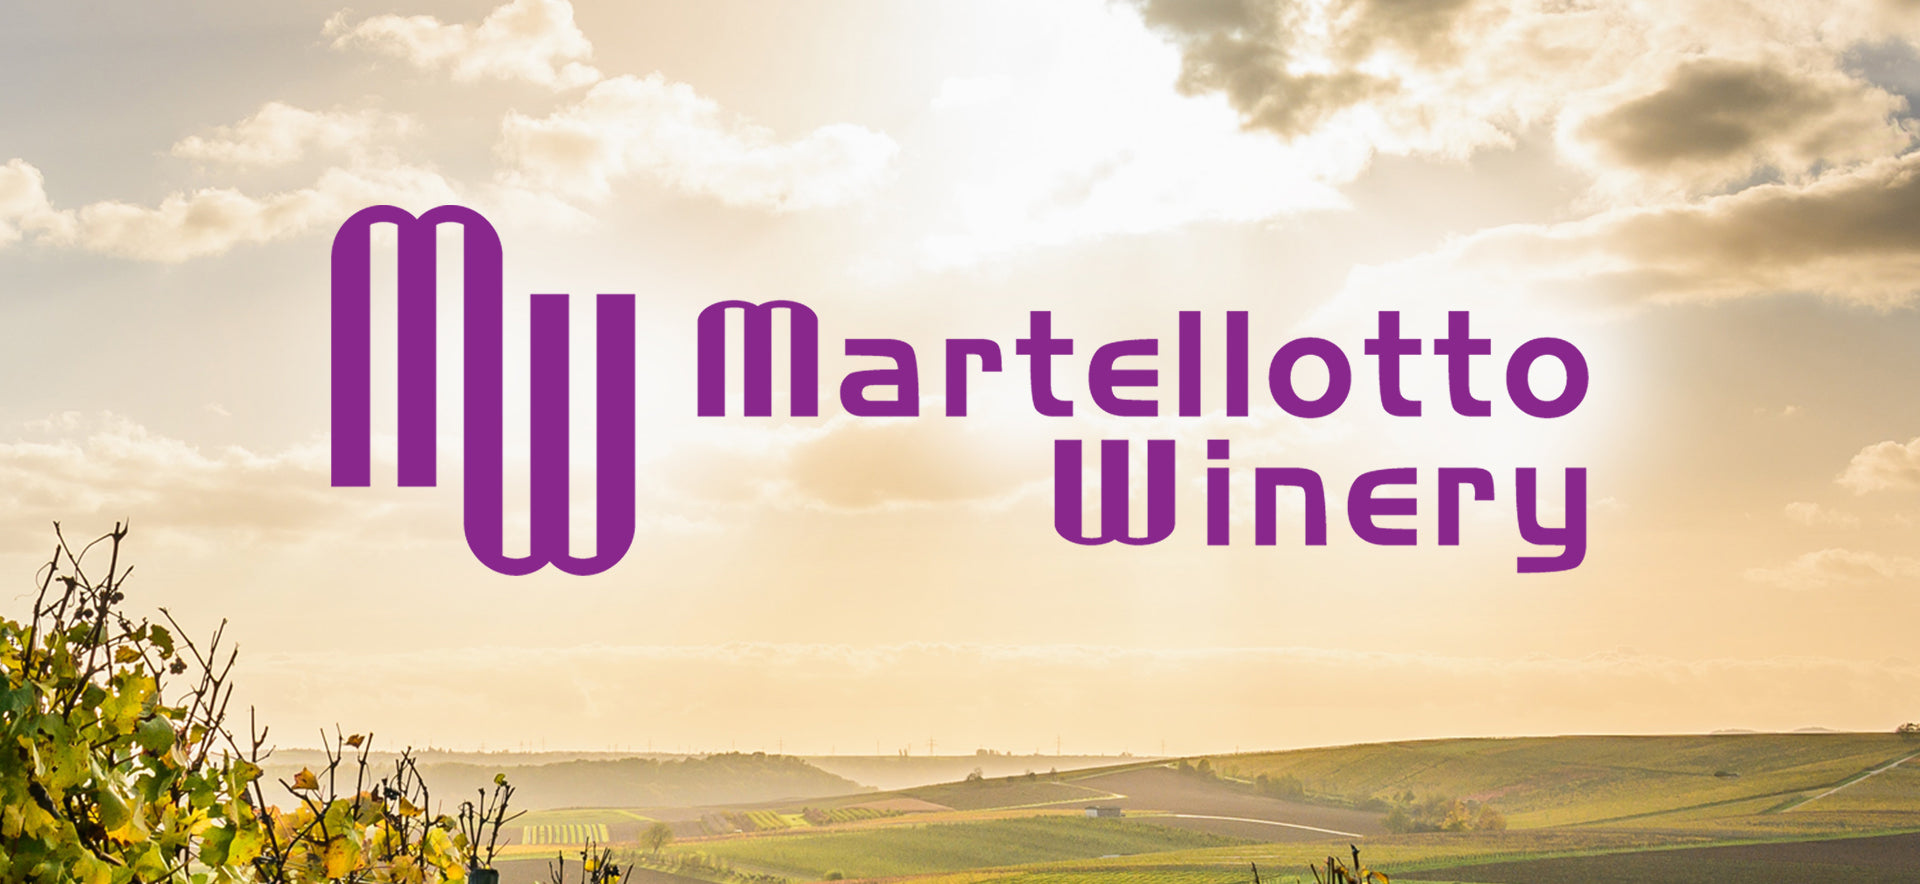 santa barbara happy canyon martellotto winery grape harvest 2019